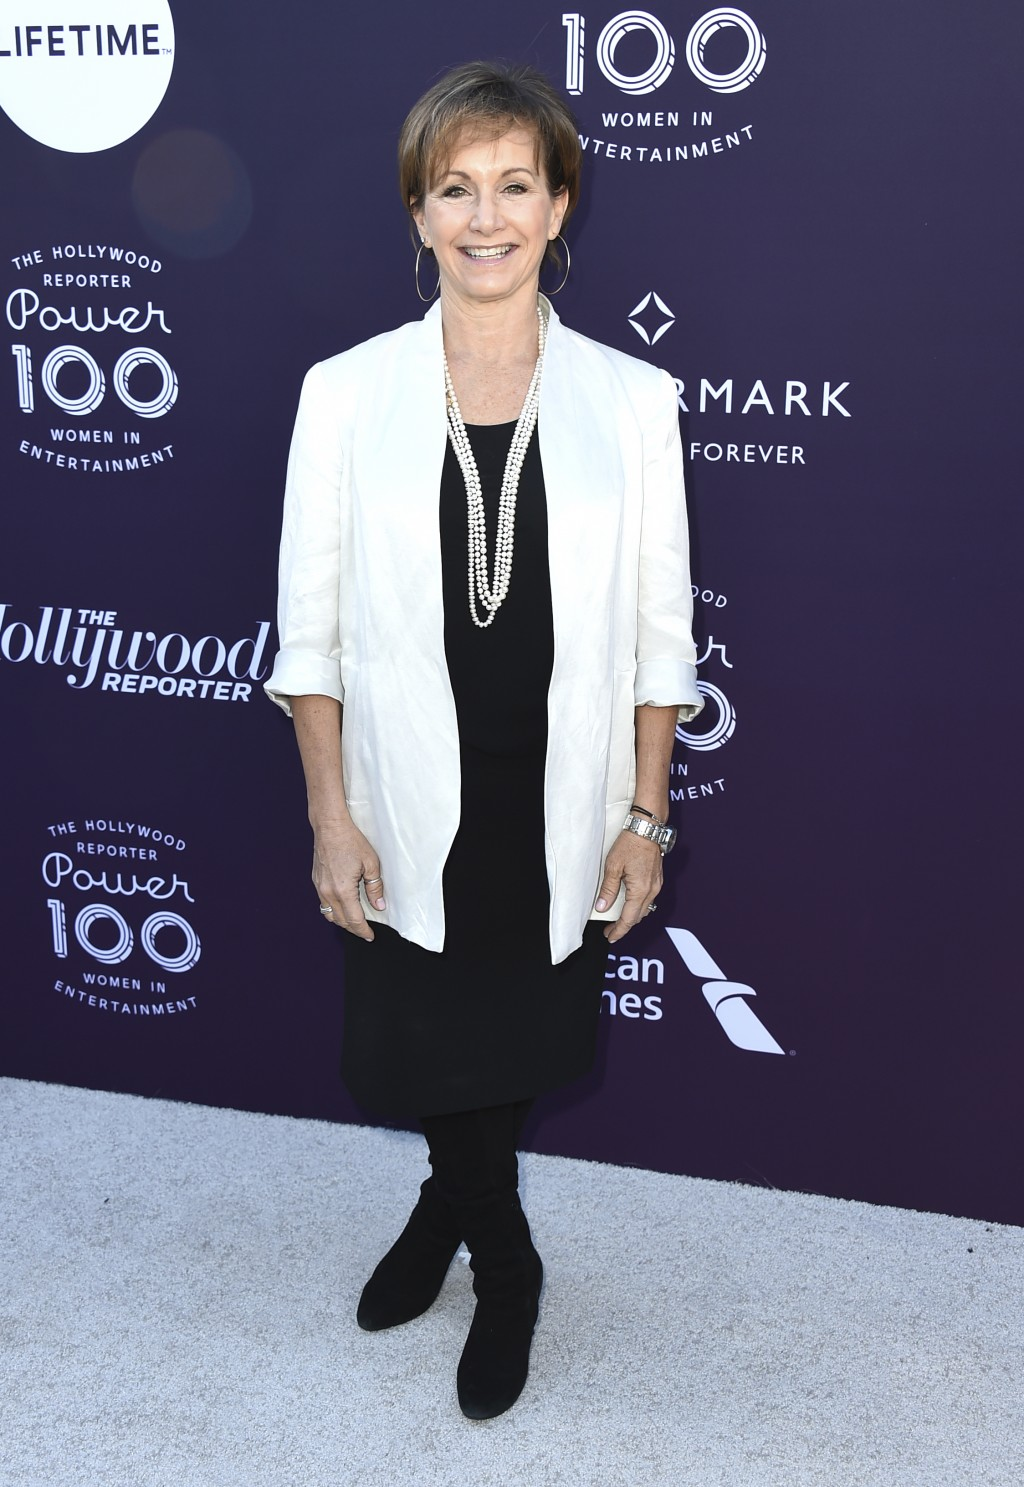 Gabrielle Carteris arrives at The Hollywood Reporter's Women in Entertainment Breakfast at Milk Studios on Wednesday, Dec. 6, 2017, in Los Angeles. (P